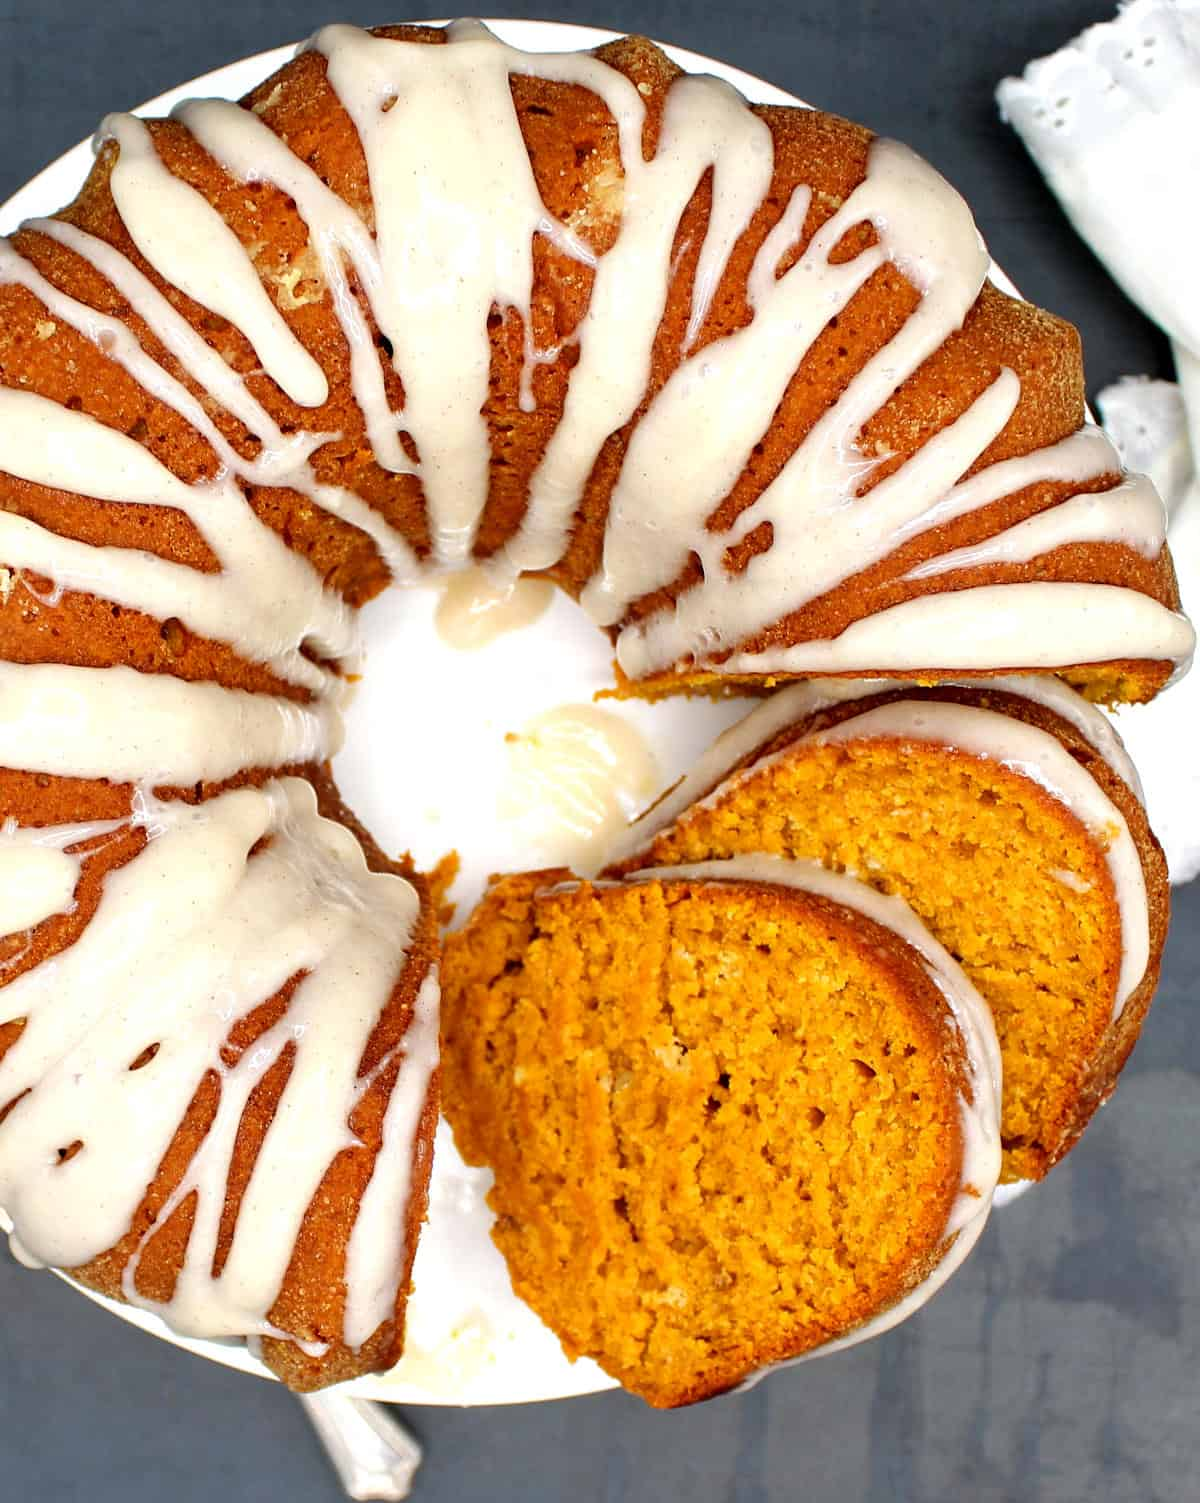 Overhead shot of a vegan chai spice pumpkin cake with two slices showing the tender, moist crumb.